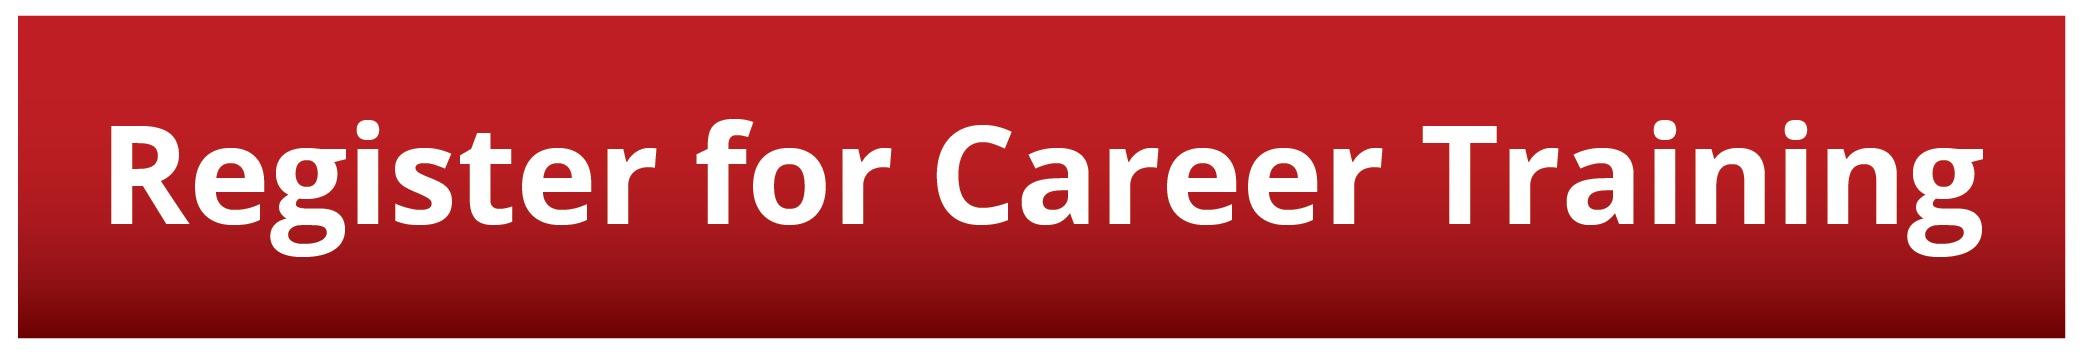 Register Career Training Button 01